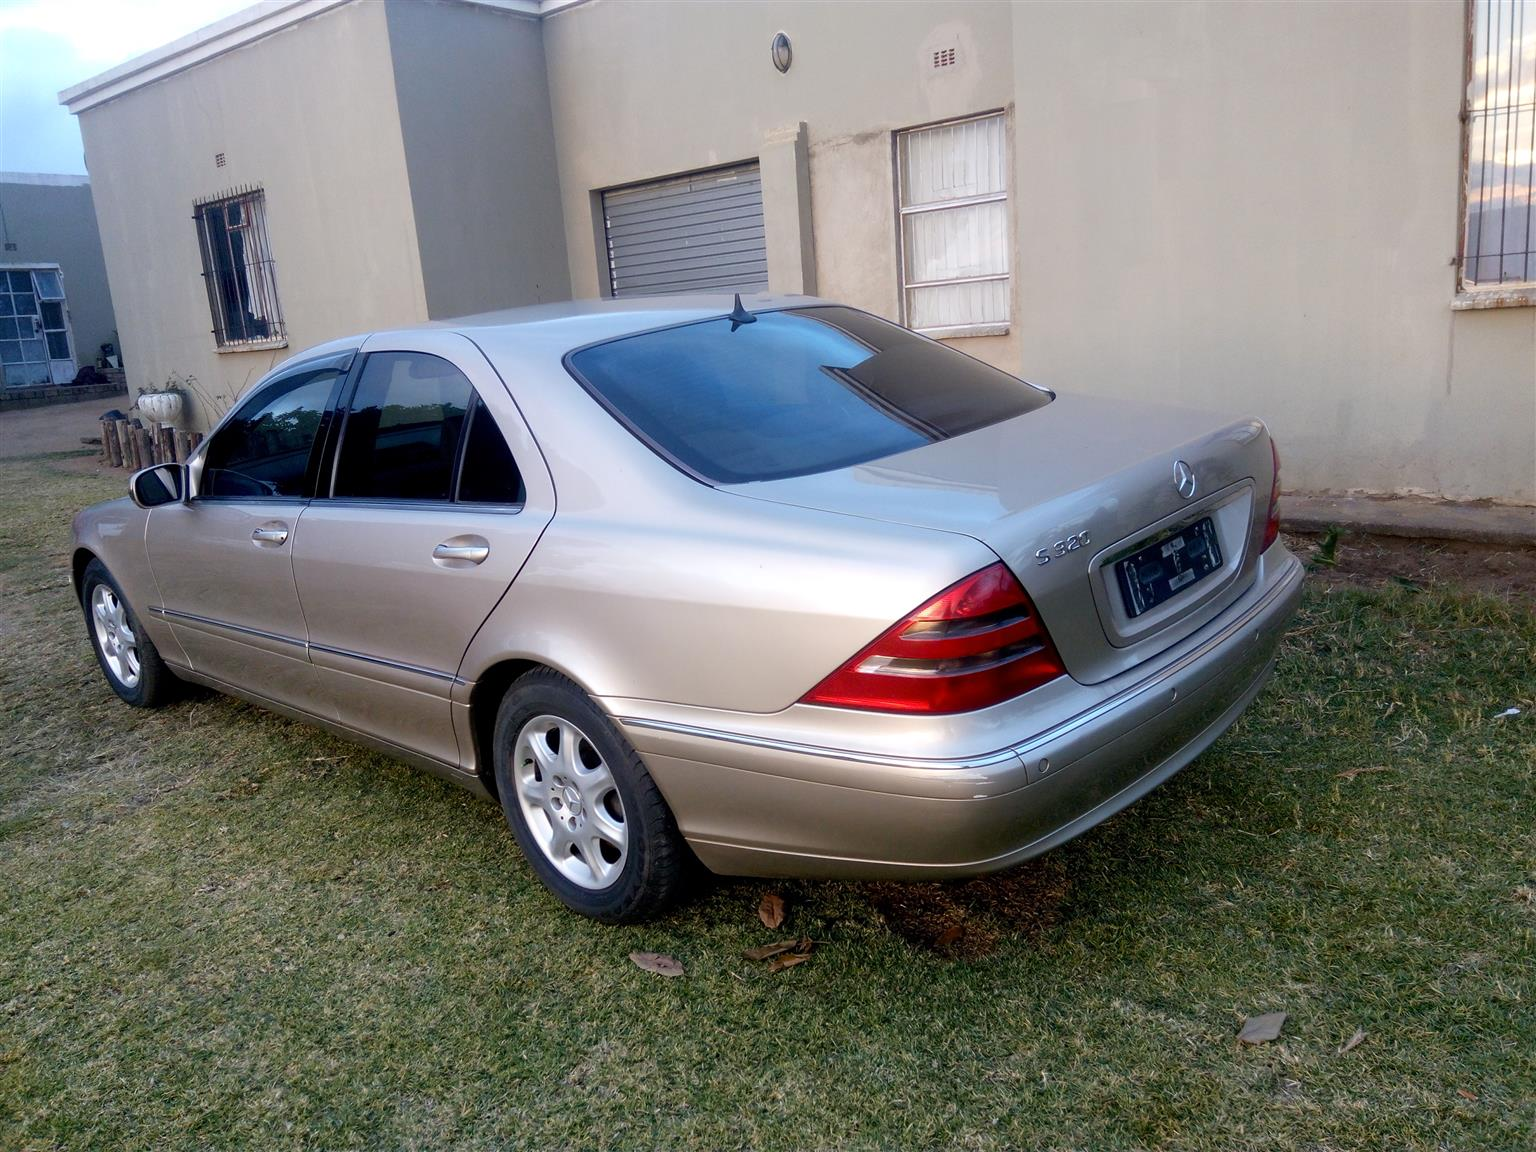 Luxury Mercedes Benz S Class S320CDI for sale